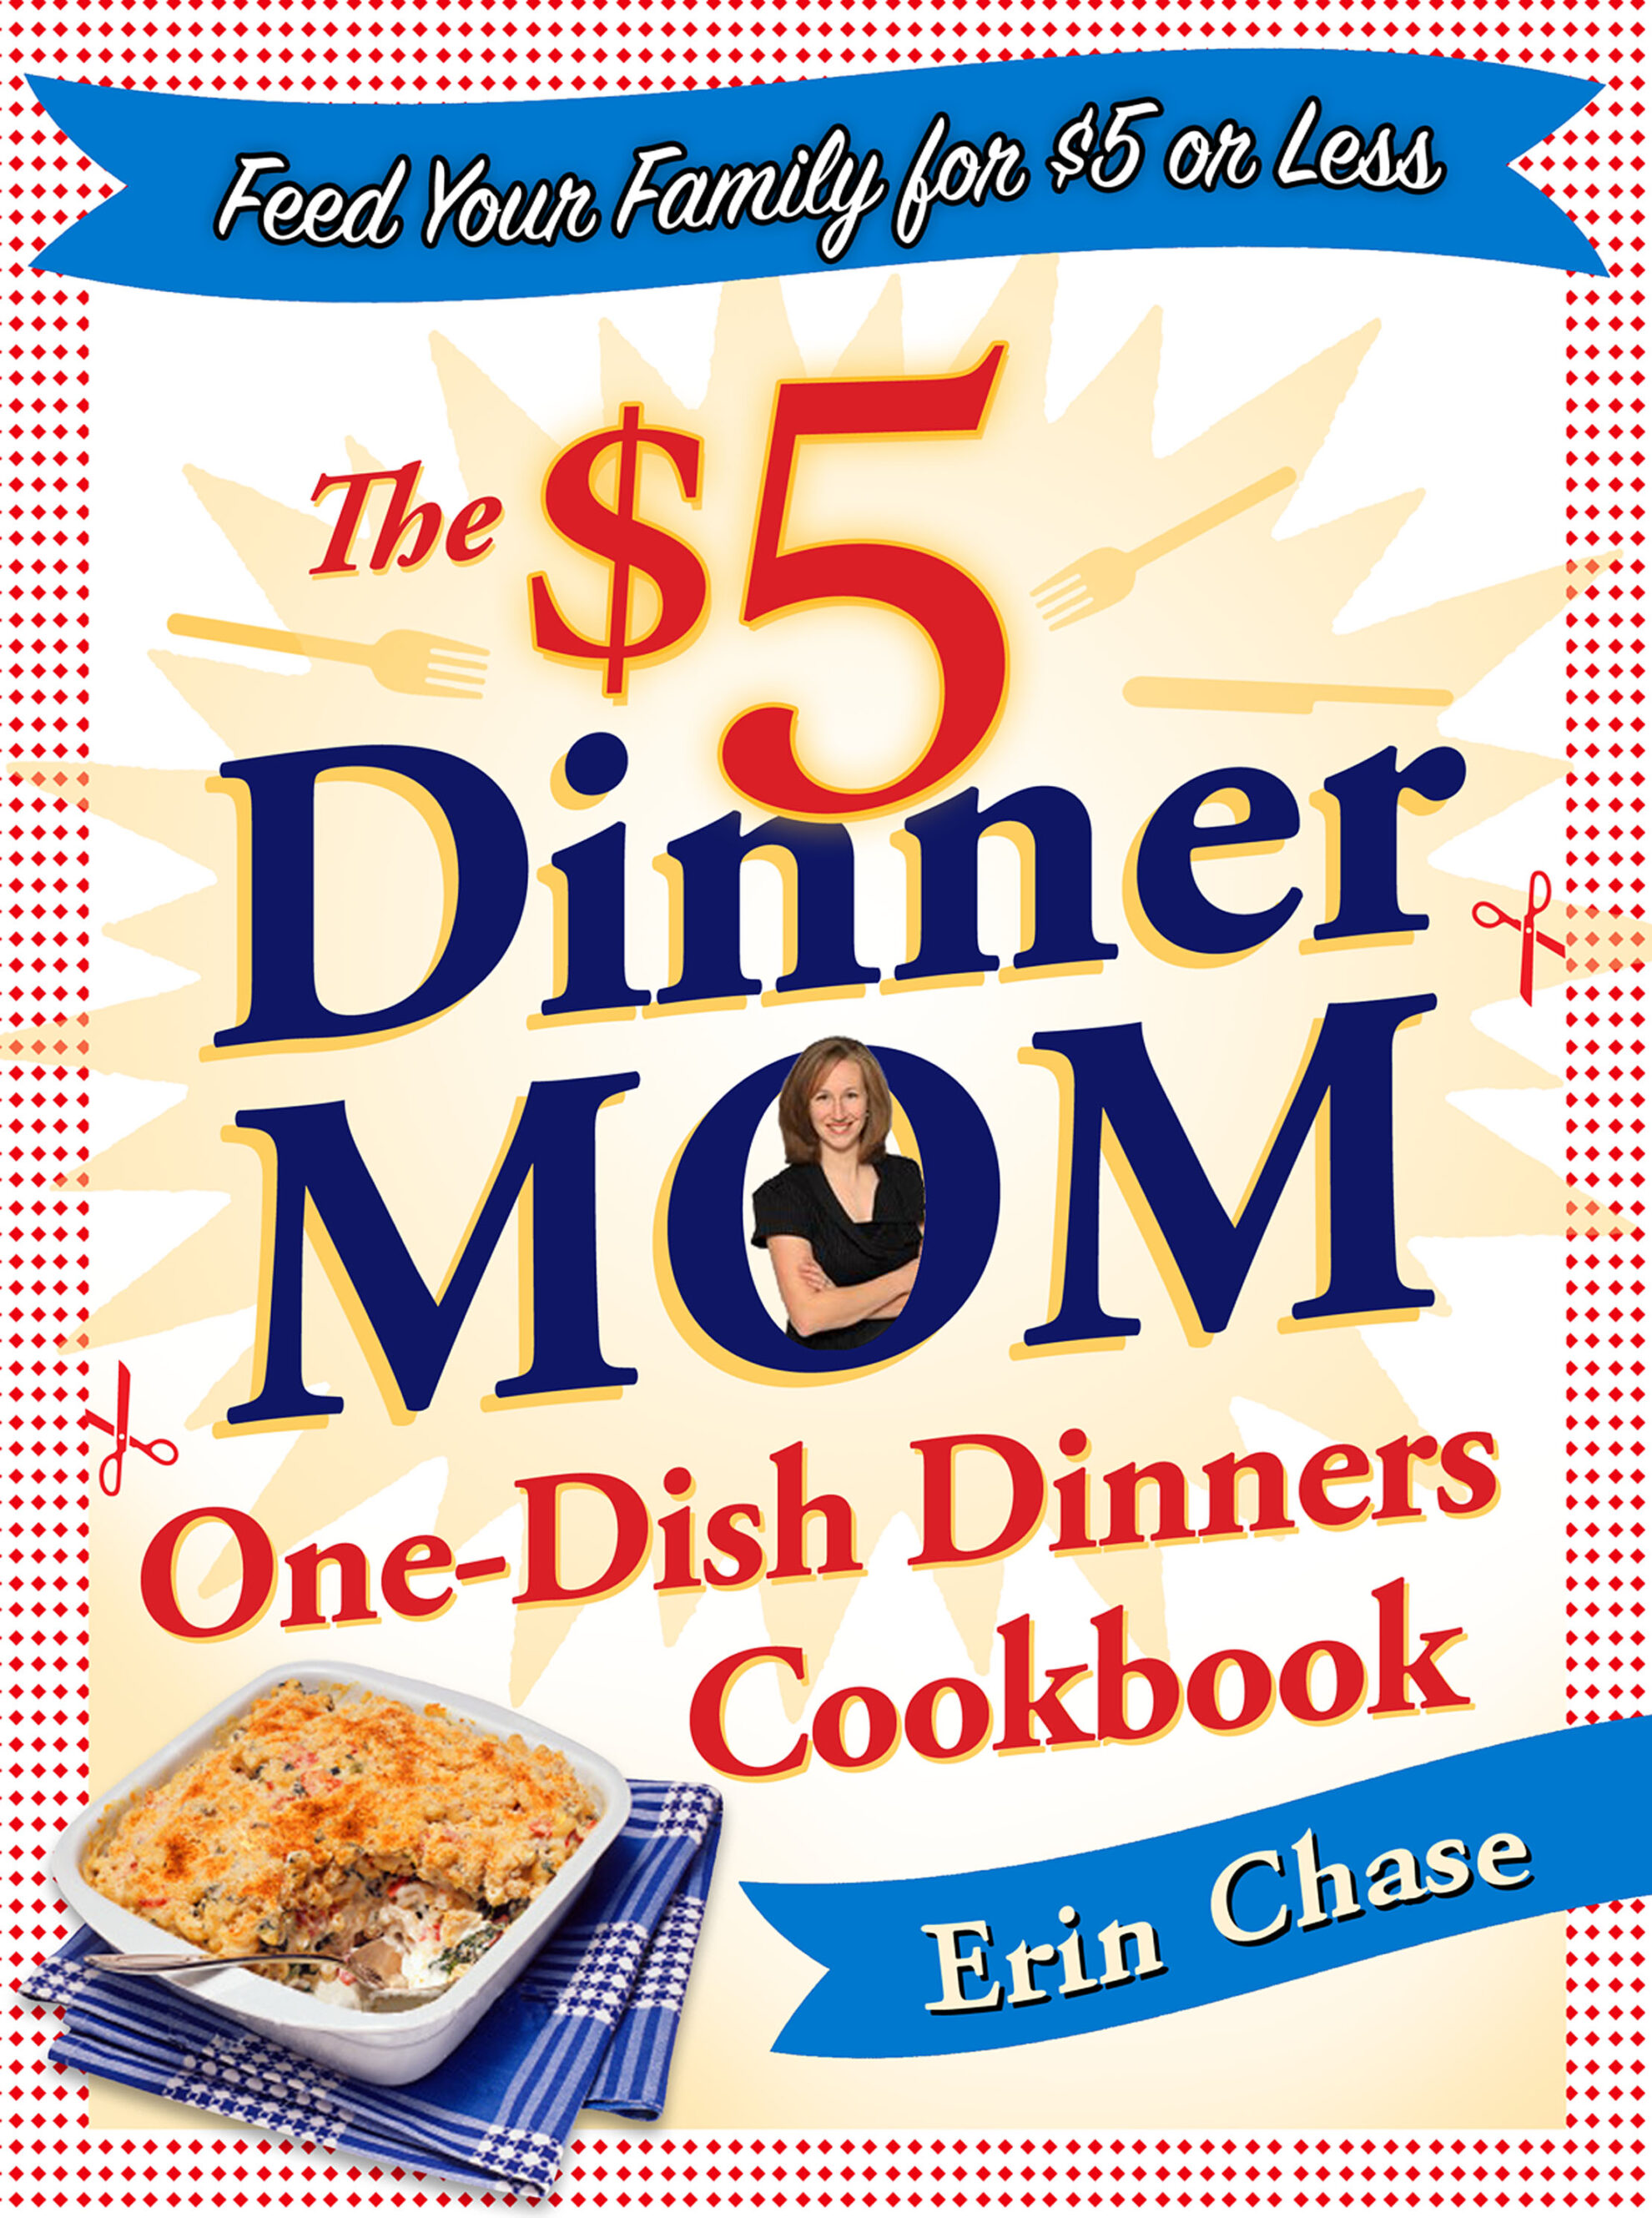 One Dish Dinner Cover Image